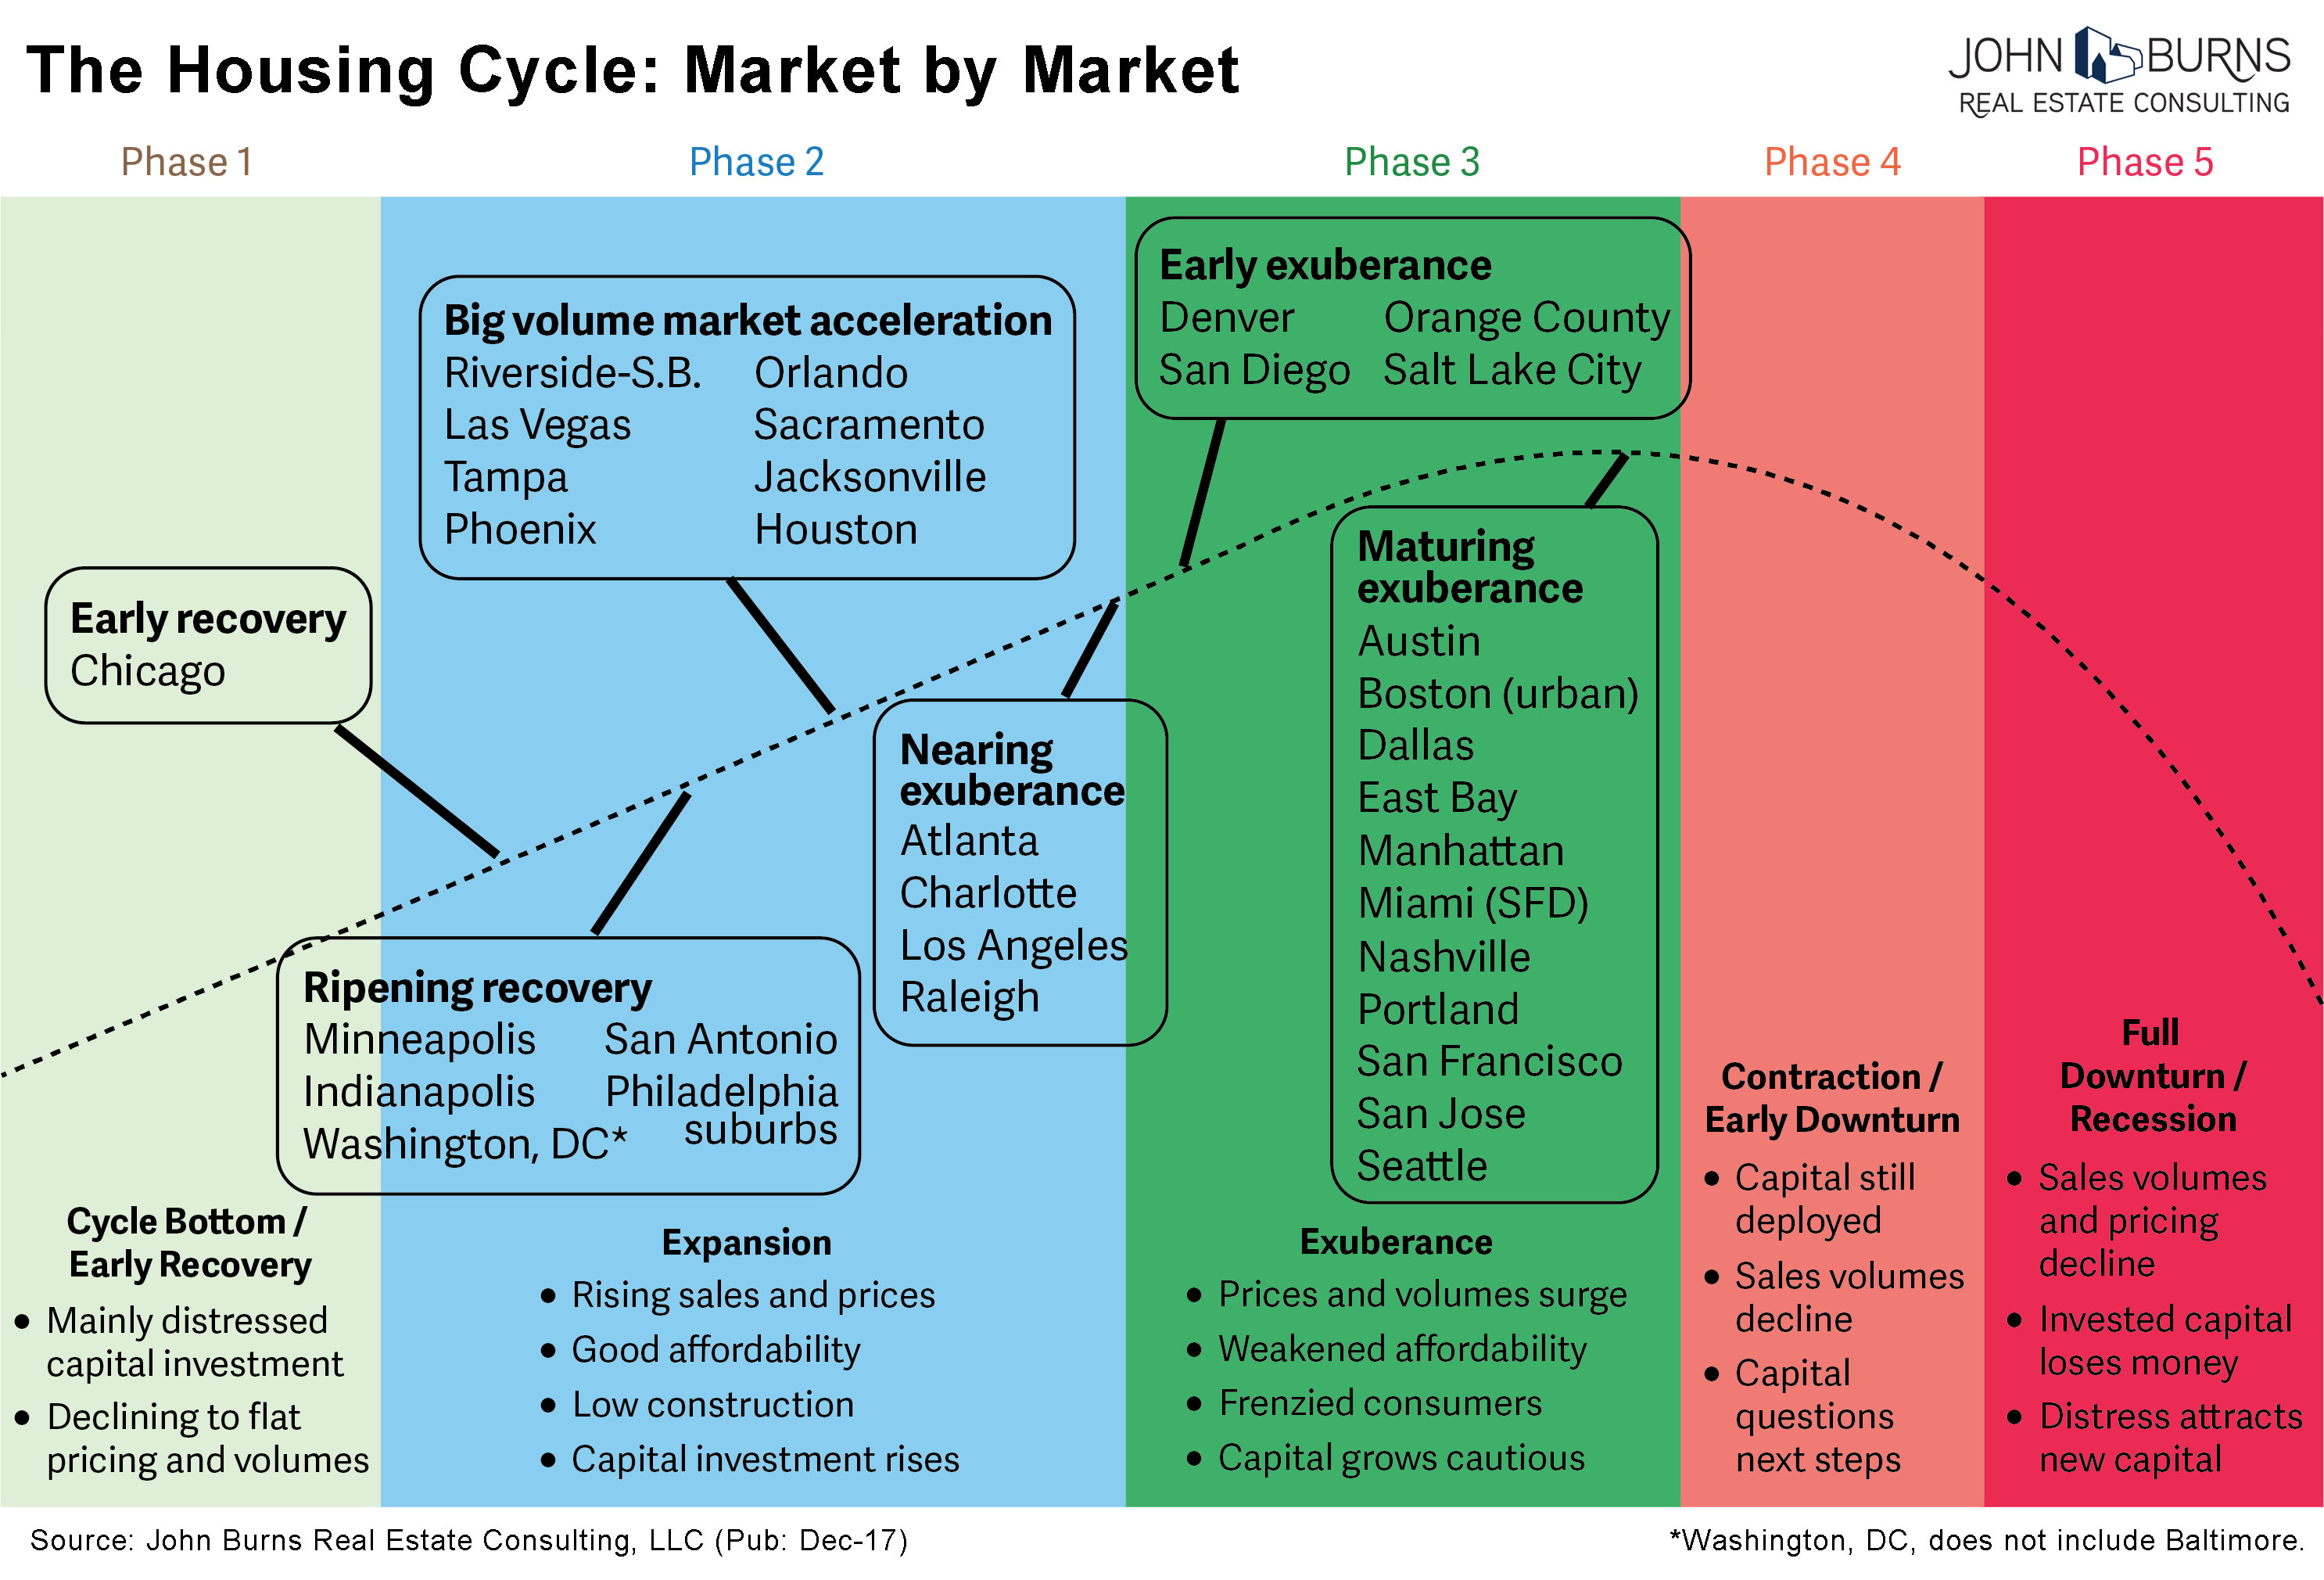 Where Are We in the Housing Cycle? | John Burns Real Estate